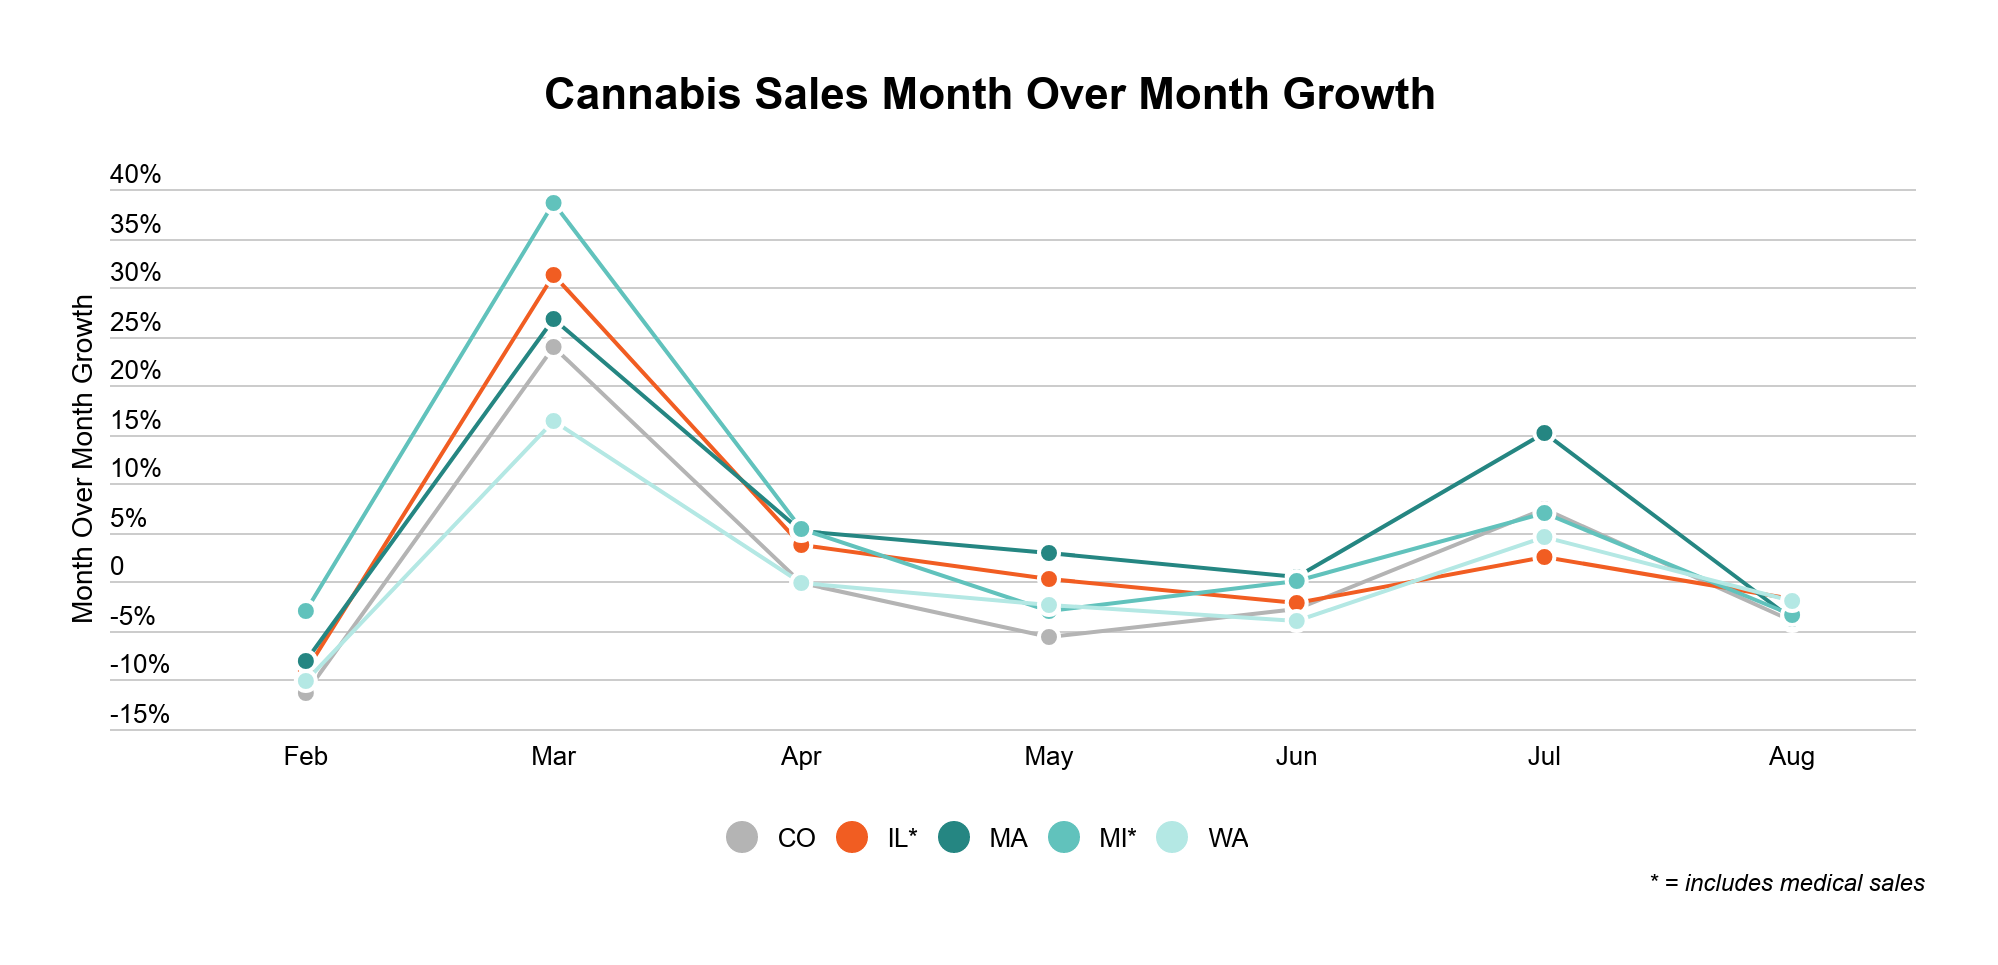 Illinois cannabis market overview graph 3: Month over month growth